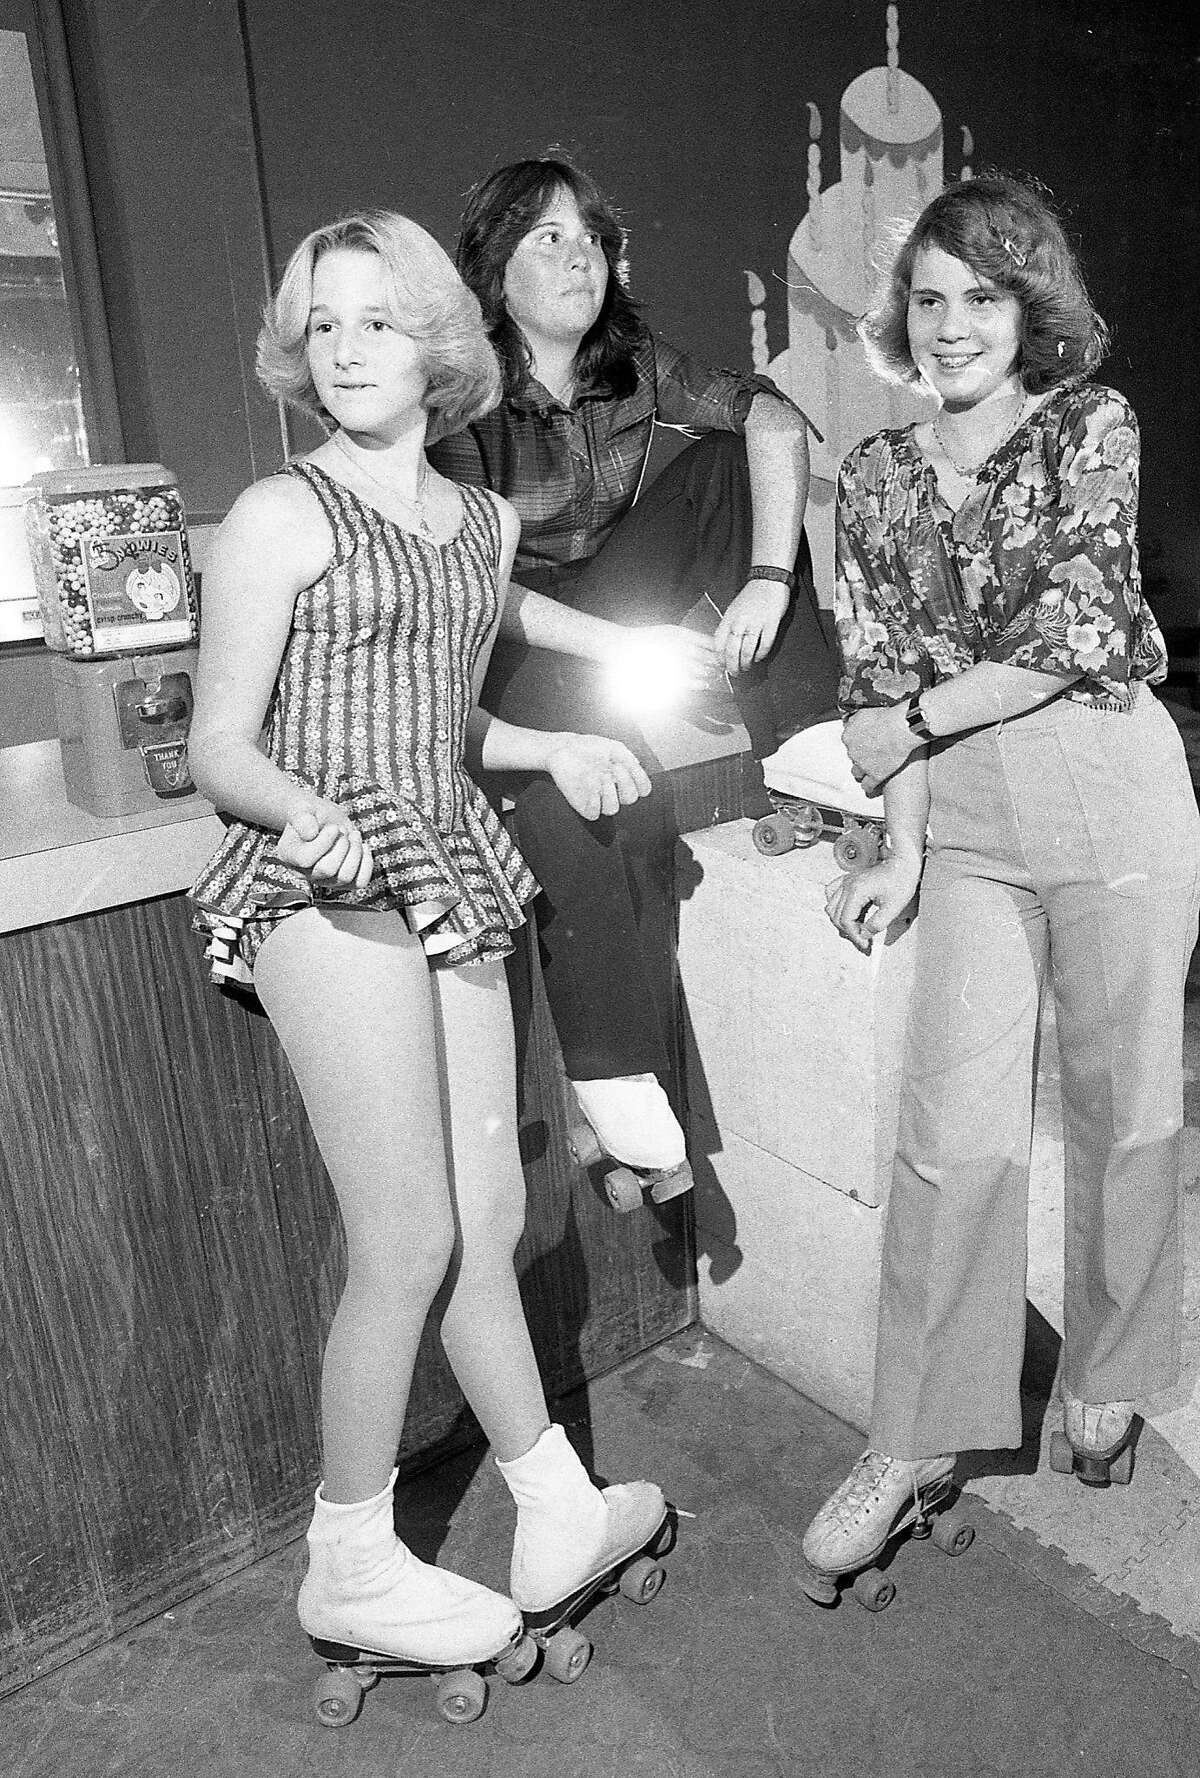 Aug. 30, 1979: Scene from the disco roller night at the Grand Arena Roller Rink in South San Francisco.